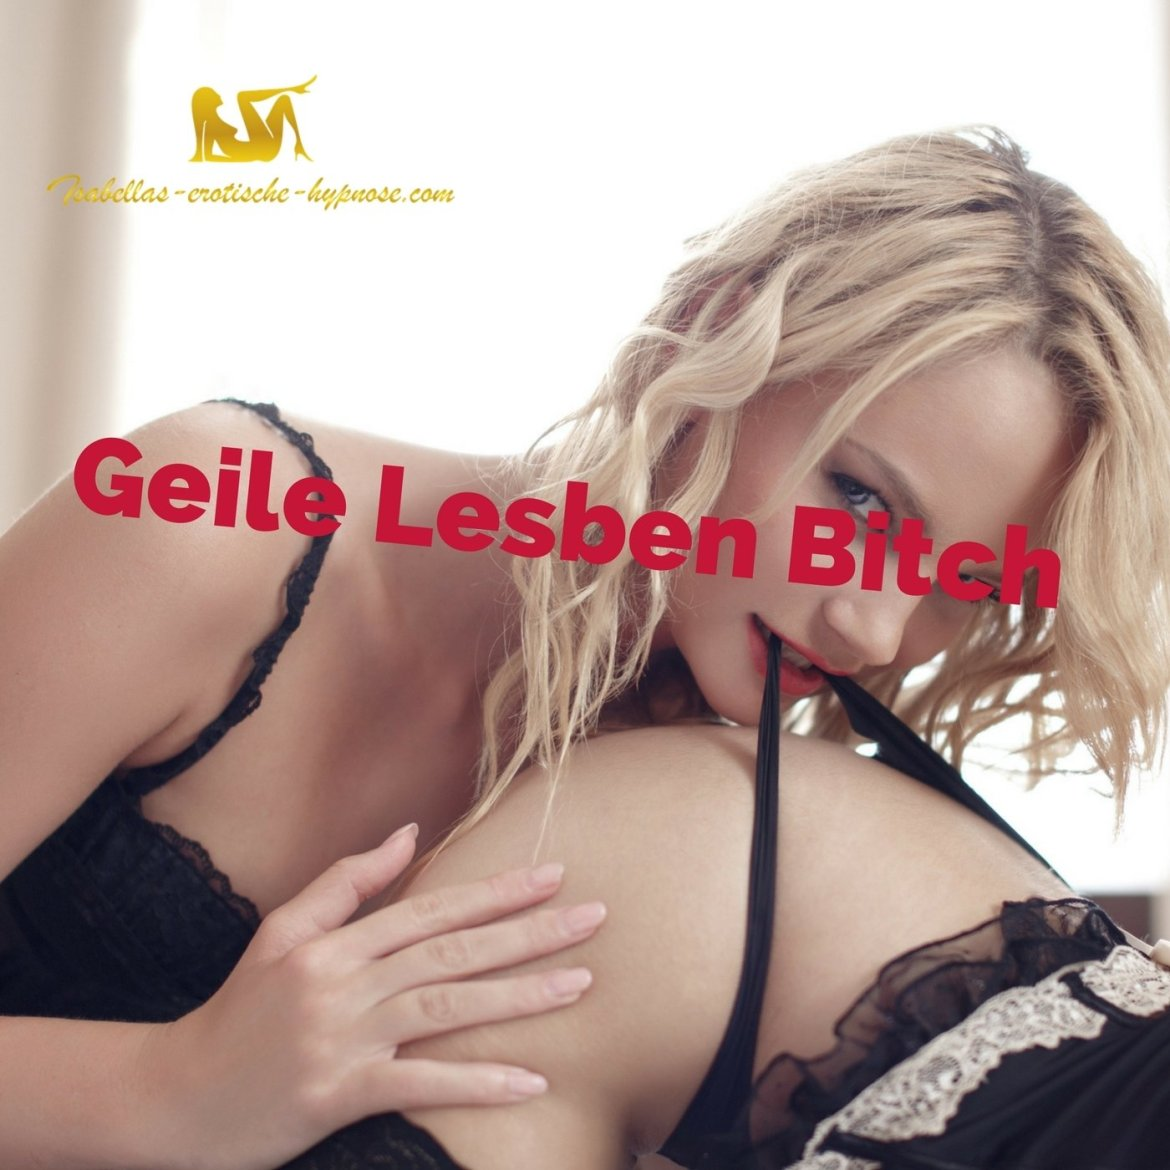 Geile Lesben Bitch by Lady Isabella 00023